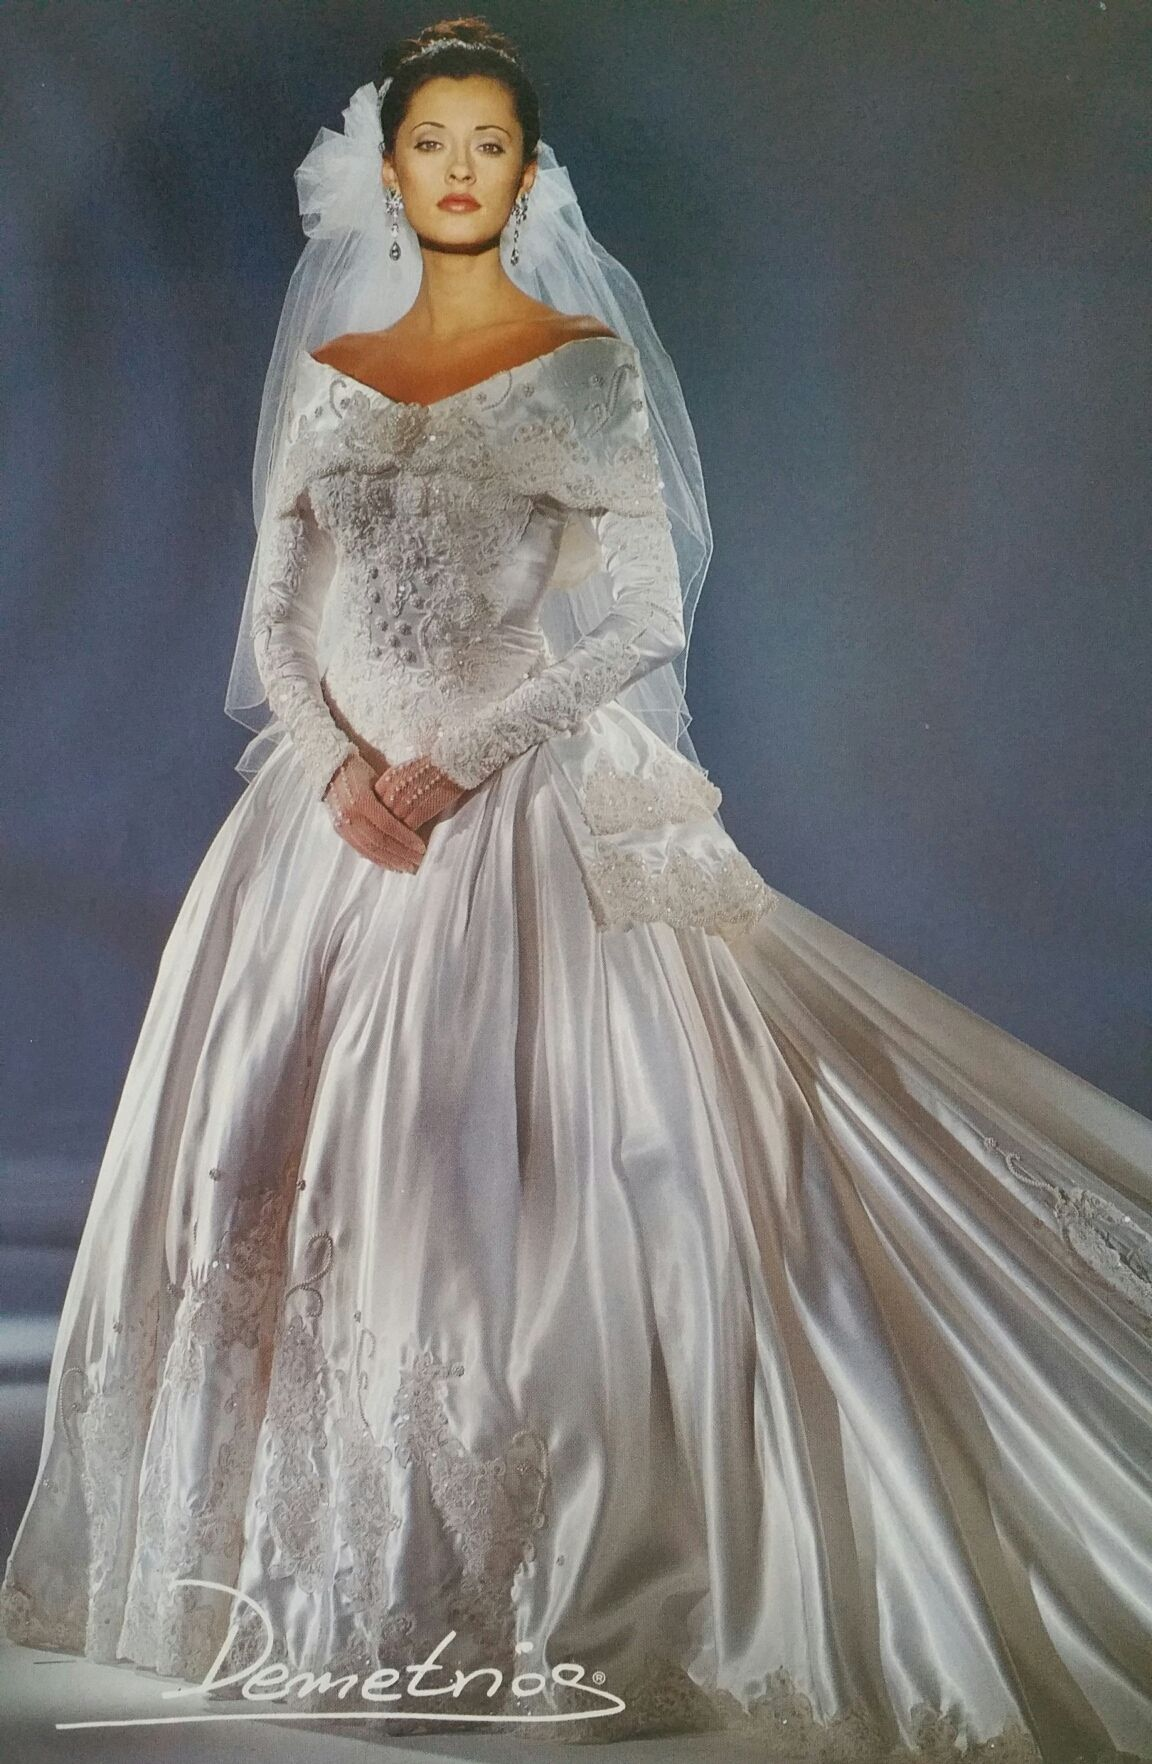 Demetrios 1992 | Demetrios gowns 24 to over 30 years old -but ...